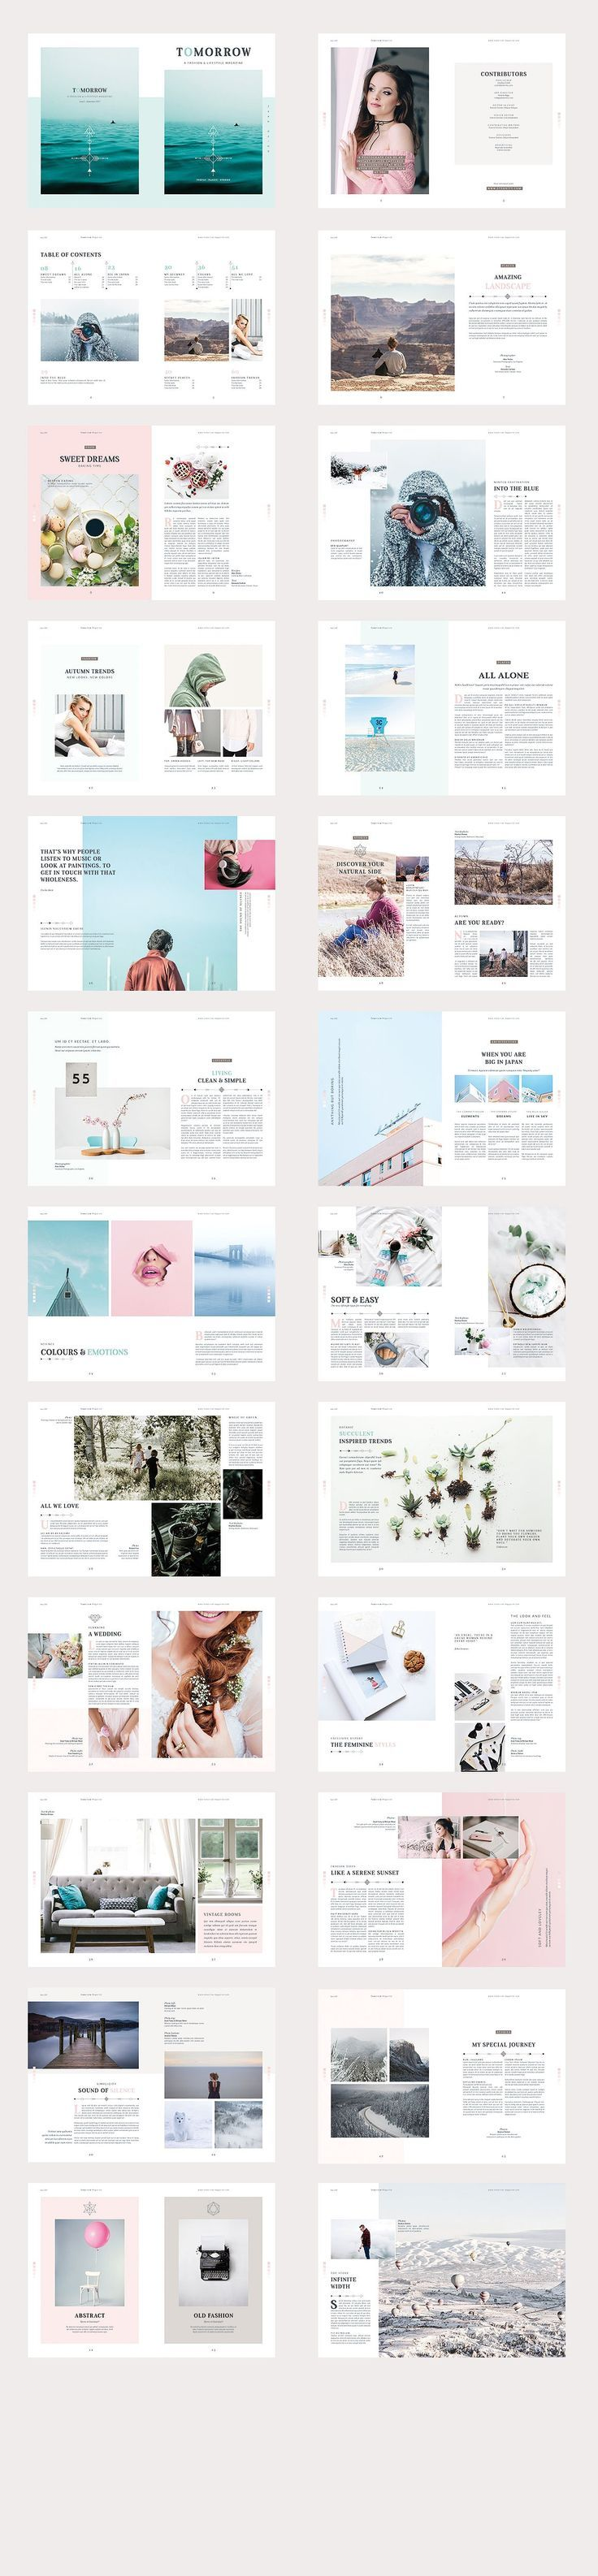 Tomorrow Magazine by Imagearea on @creativemarket Printing brochure template with one of the best creative design and great cover, perfect for modern corporate appearance for business companies. This layout is modern, simple and feminine; have a good inspiration or grab some ideas.